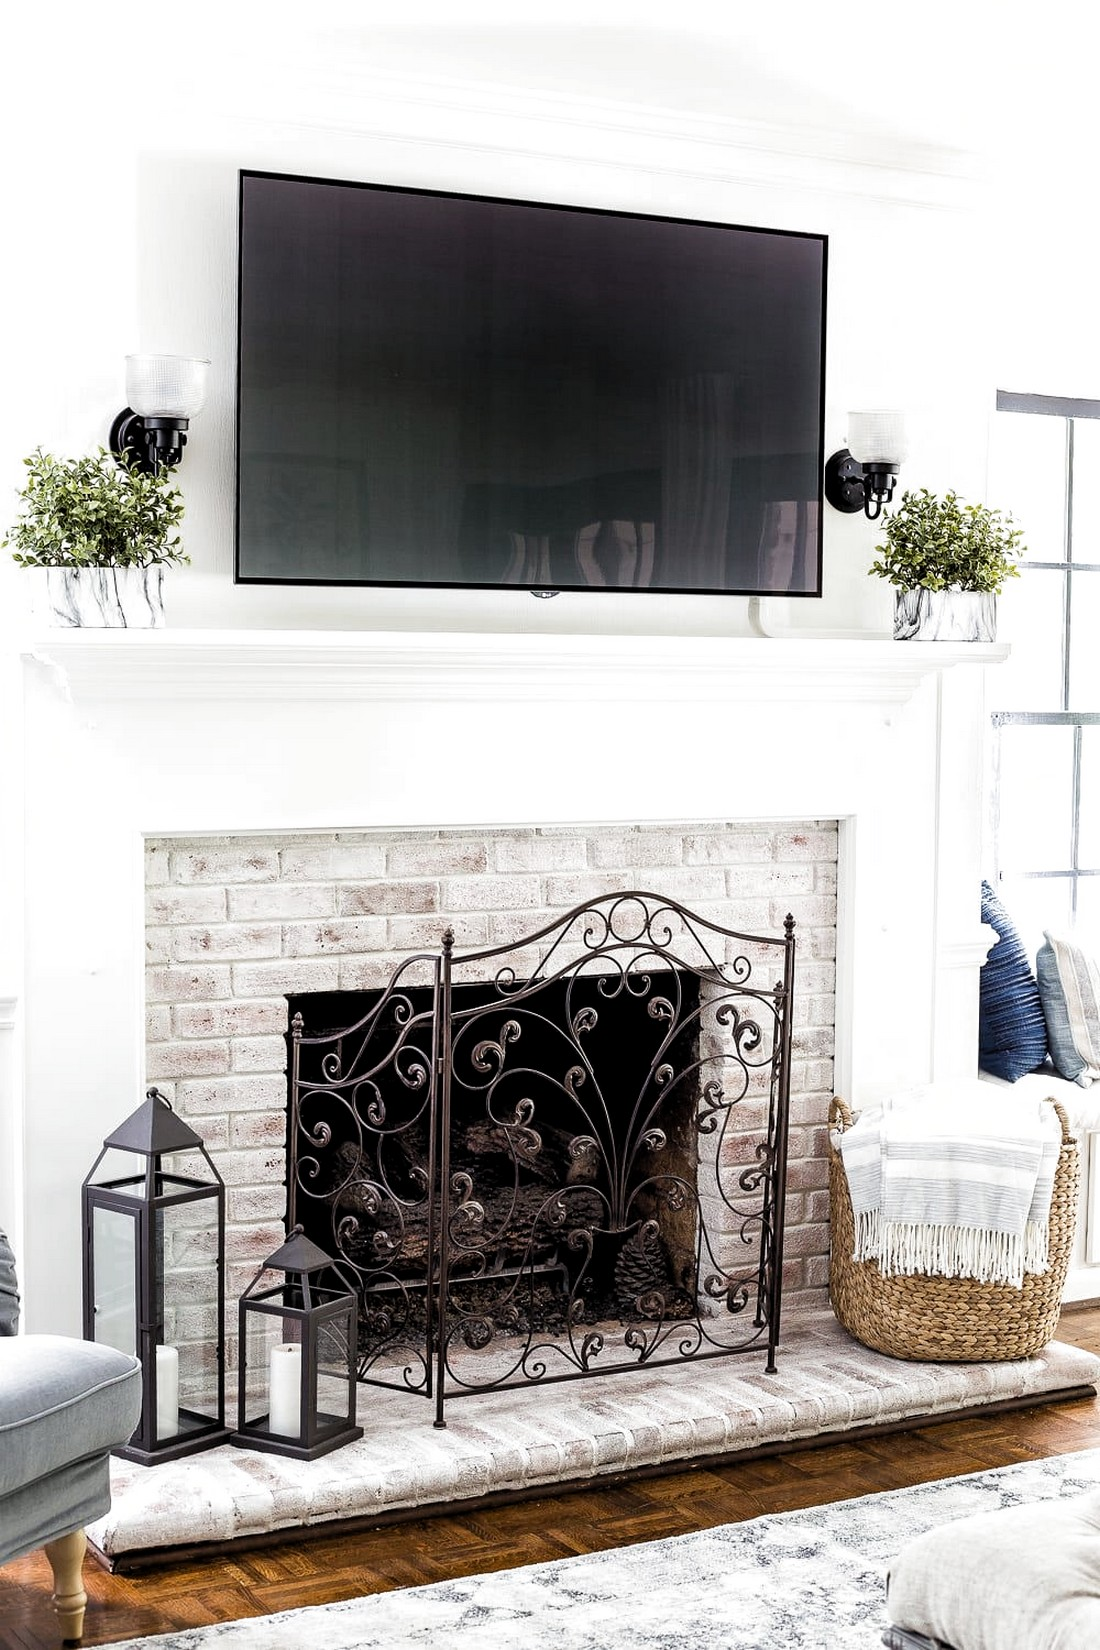 76 Stone Fireplaces The Hearth Is The Heart of The Home 39